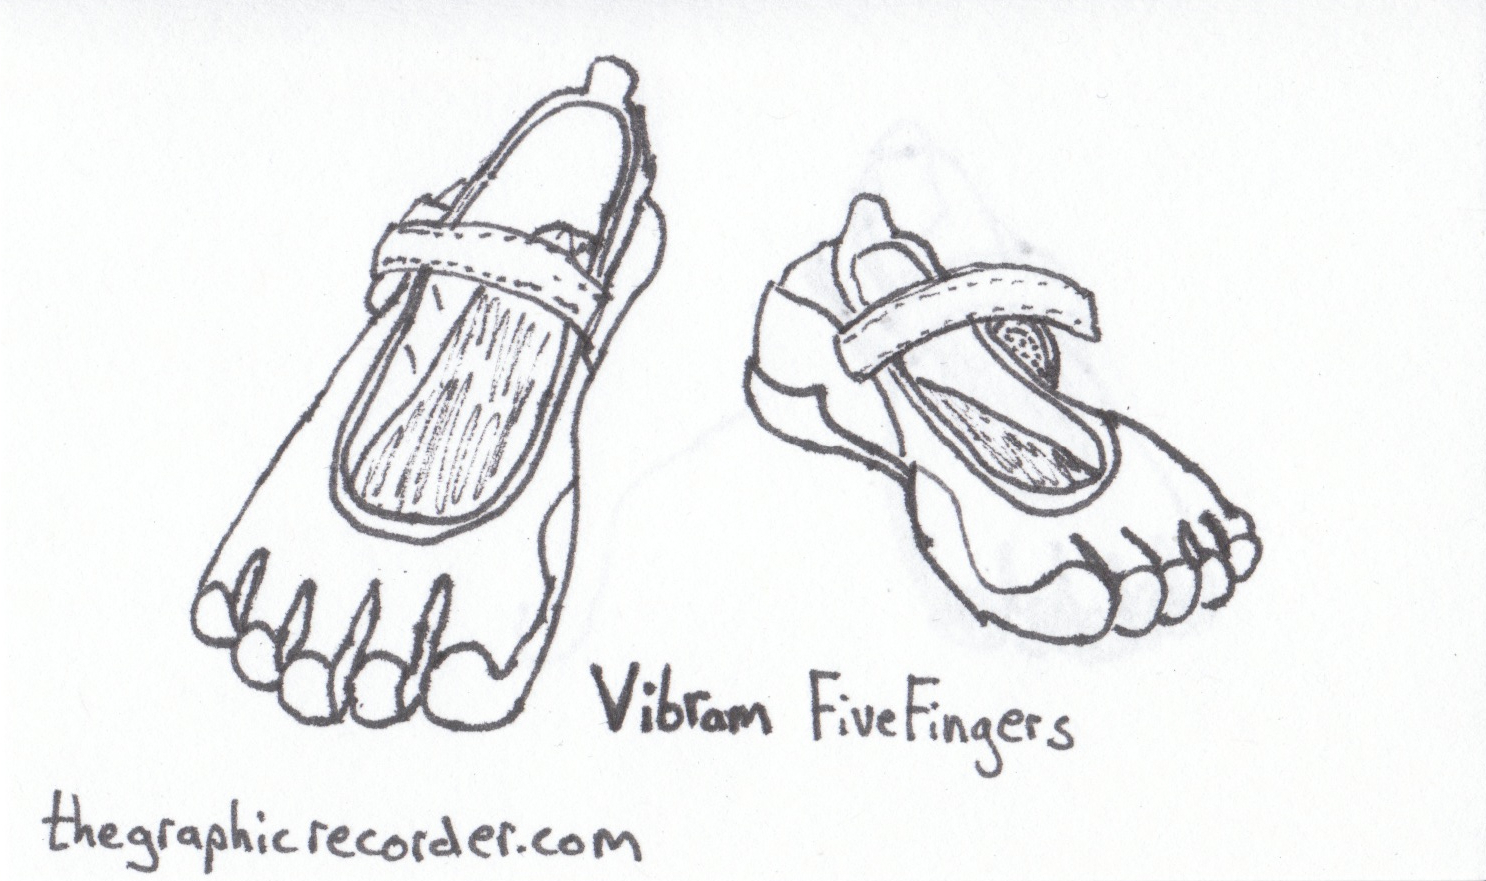 The Graphic Recorder - Visual Vocabulary - Footwear - Vibram Five Fingers